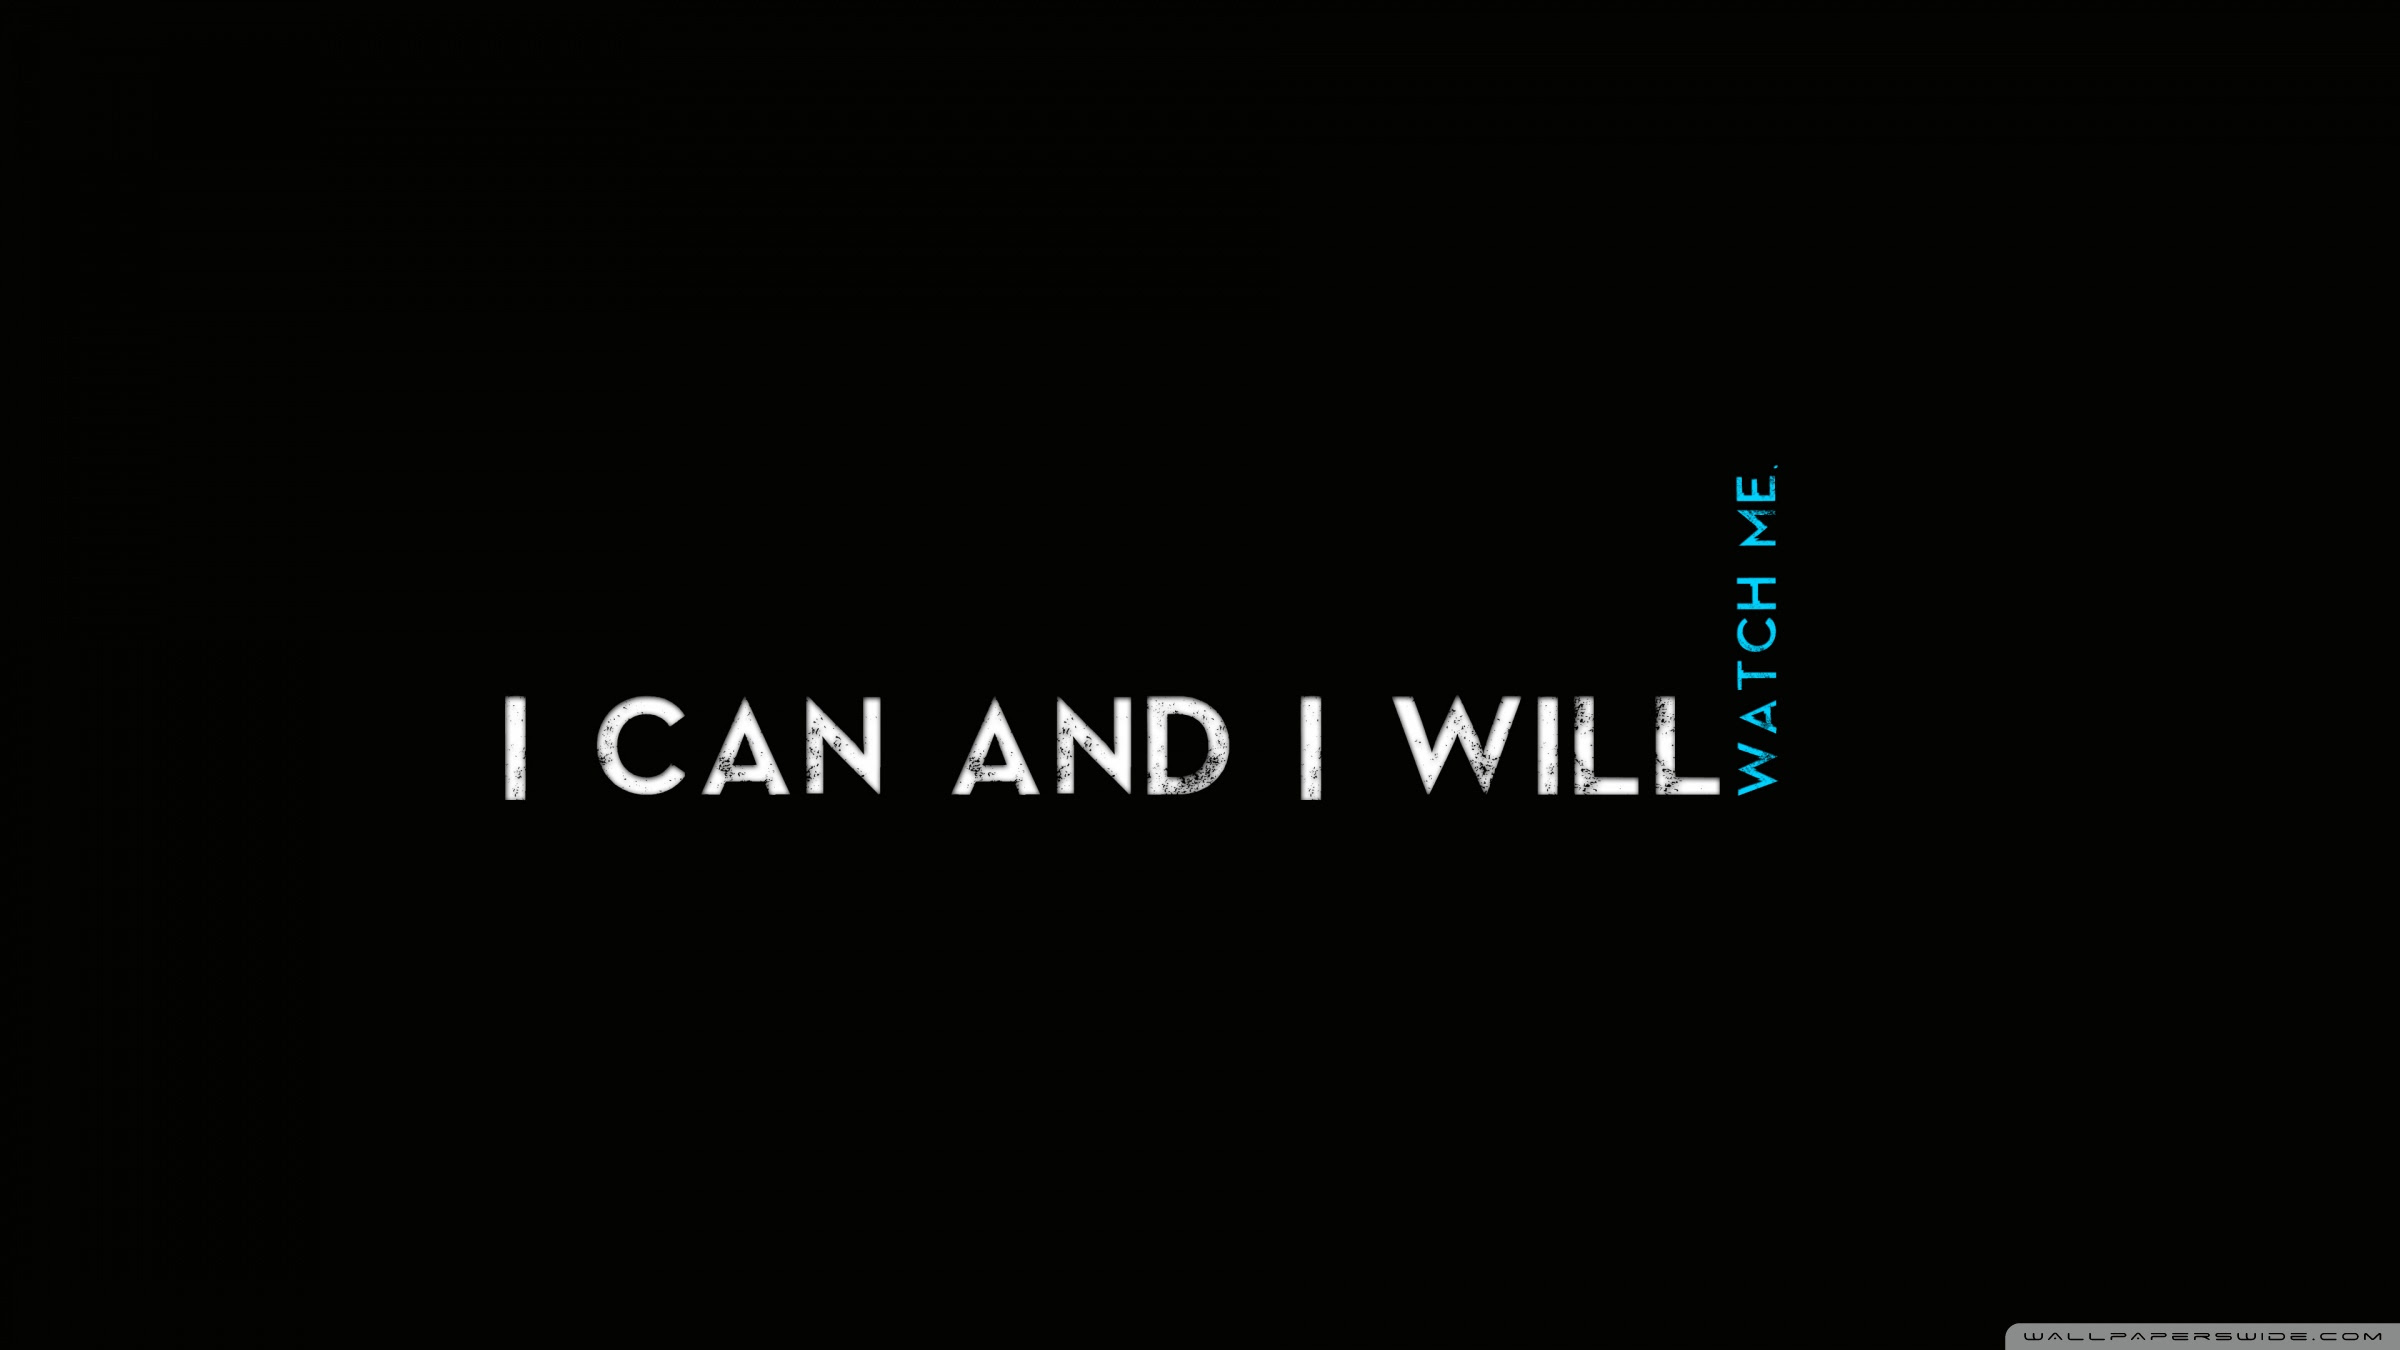 Quotes I Can And I Will 4k Hd Desktop Wallpaper For 4k Ultra Hd